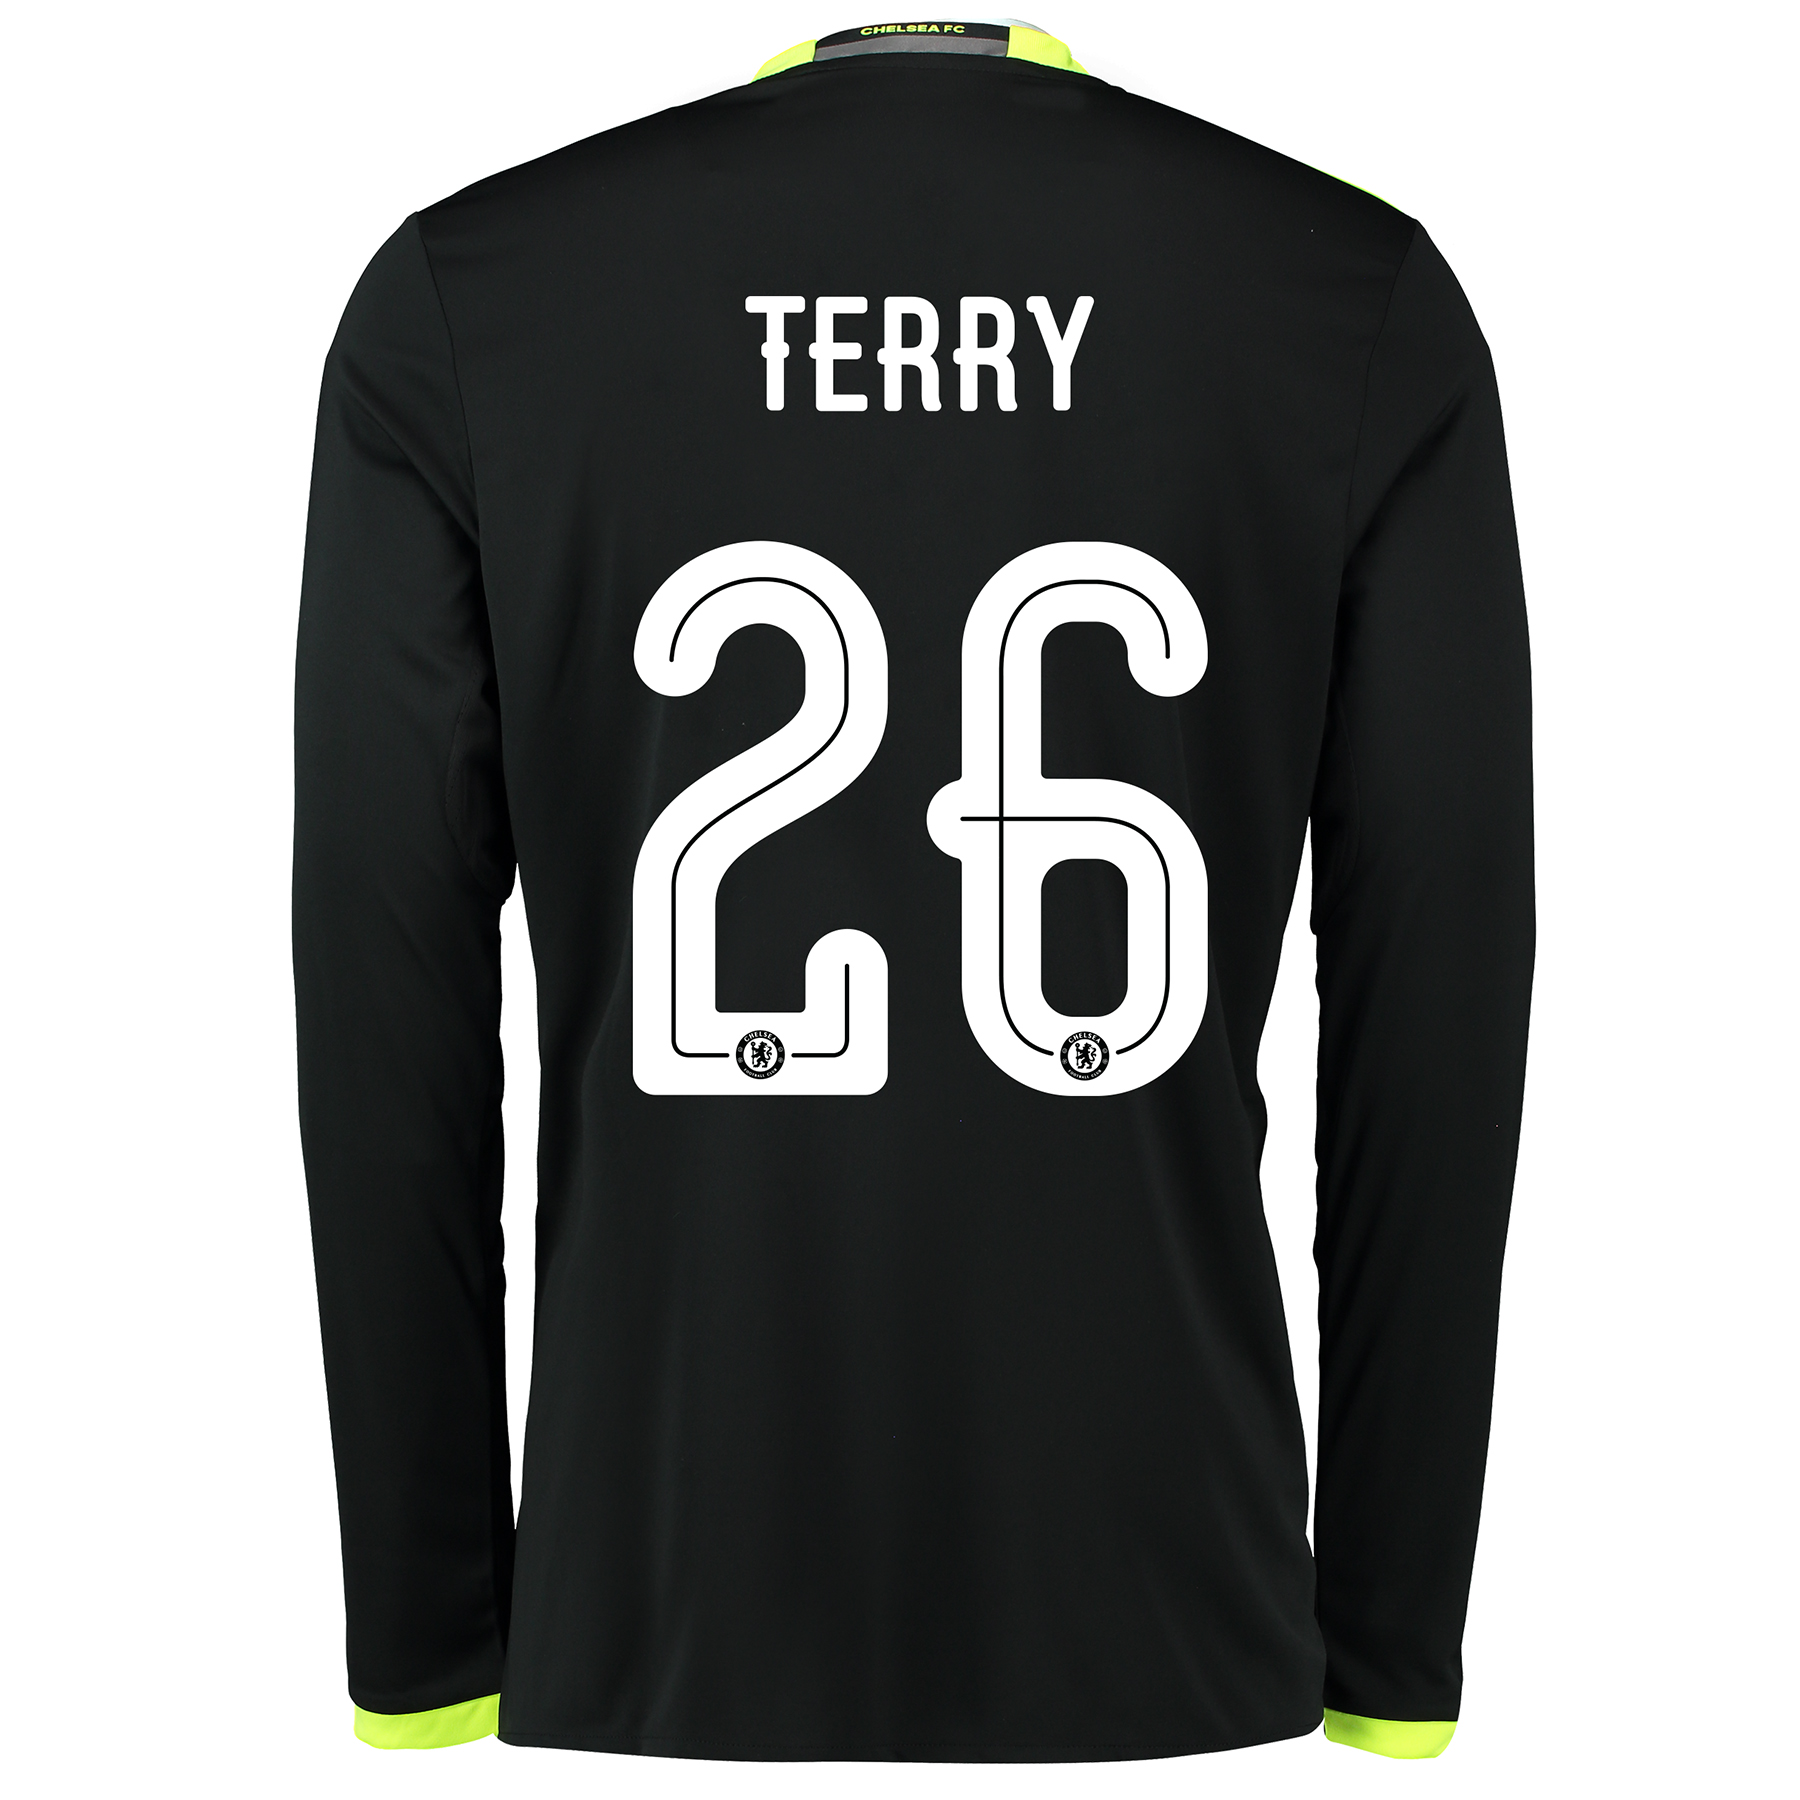 Chelsea Linear Away Shirt 16-17 - Long Sleeve with Terry 26 printing